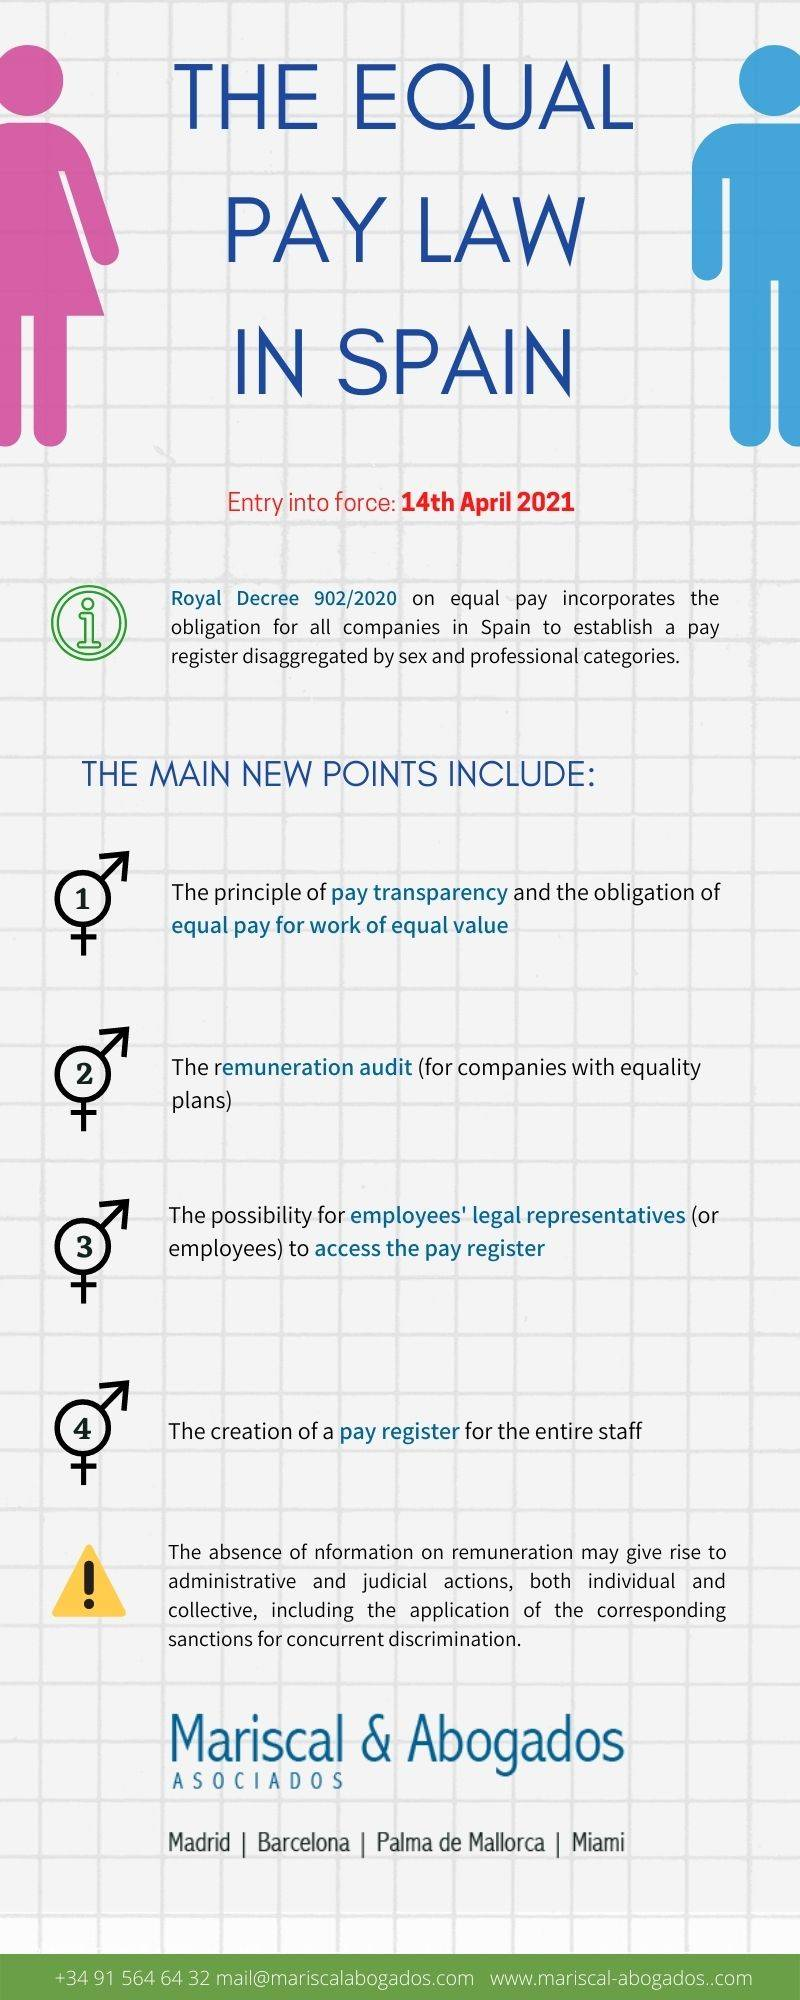 The Equal Pay Law in Spain